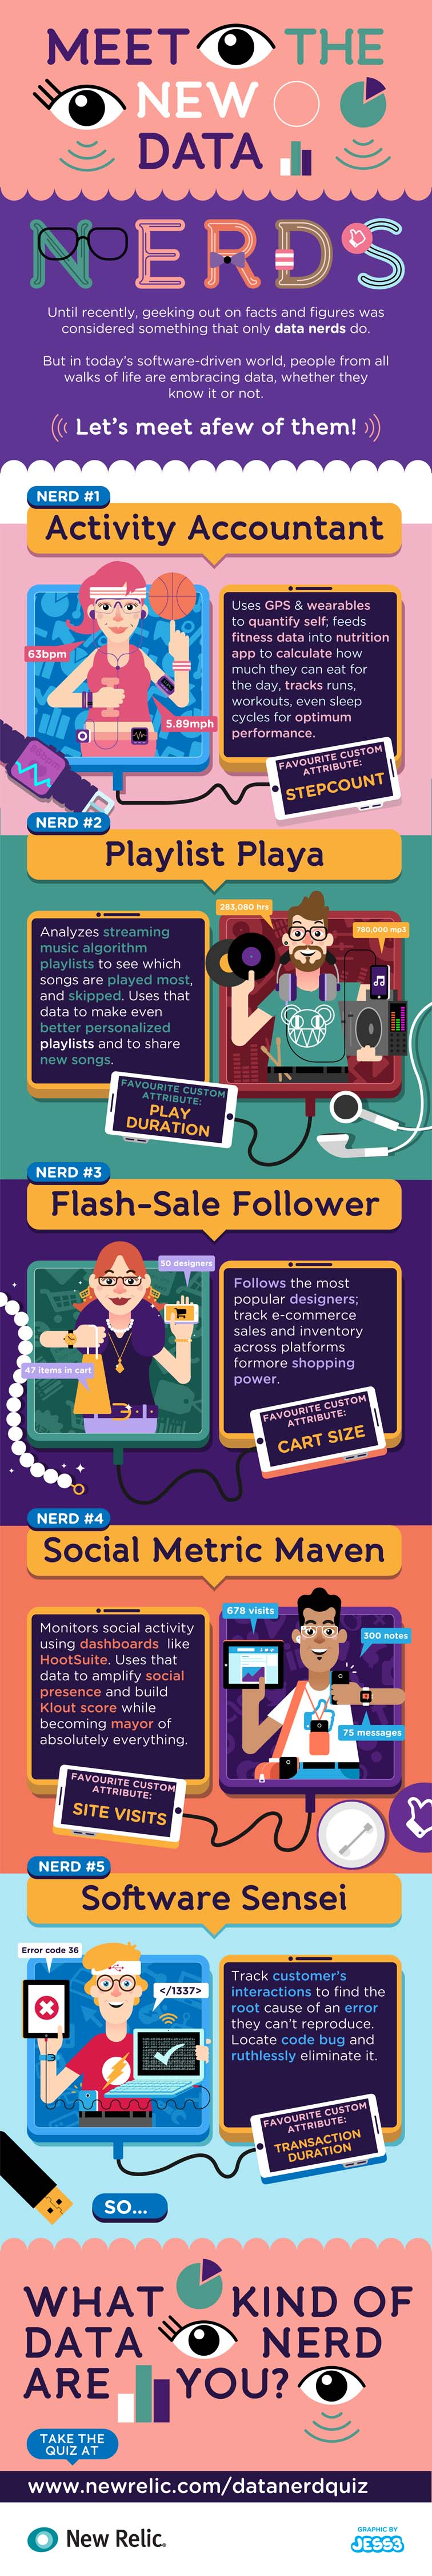 New Relic Data Nerd Infographic 5720